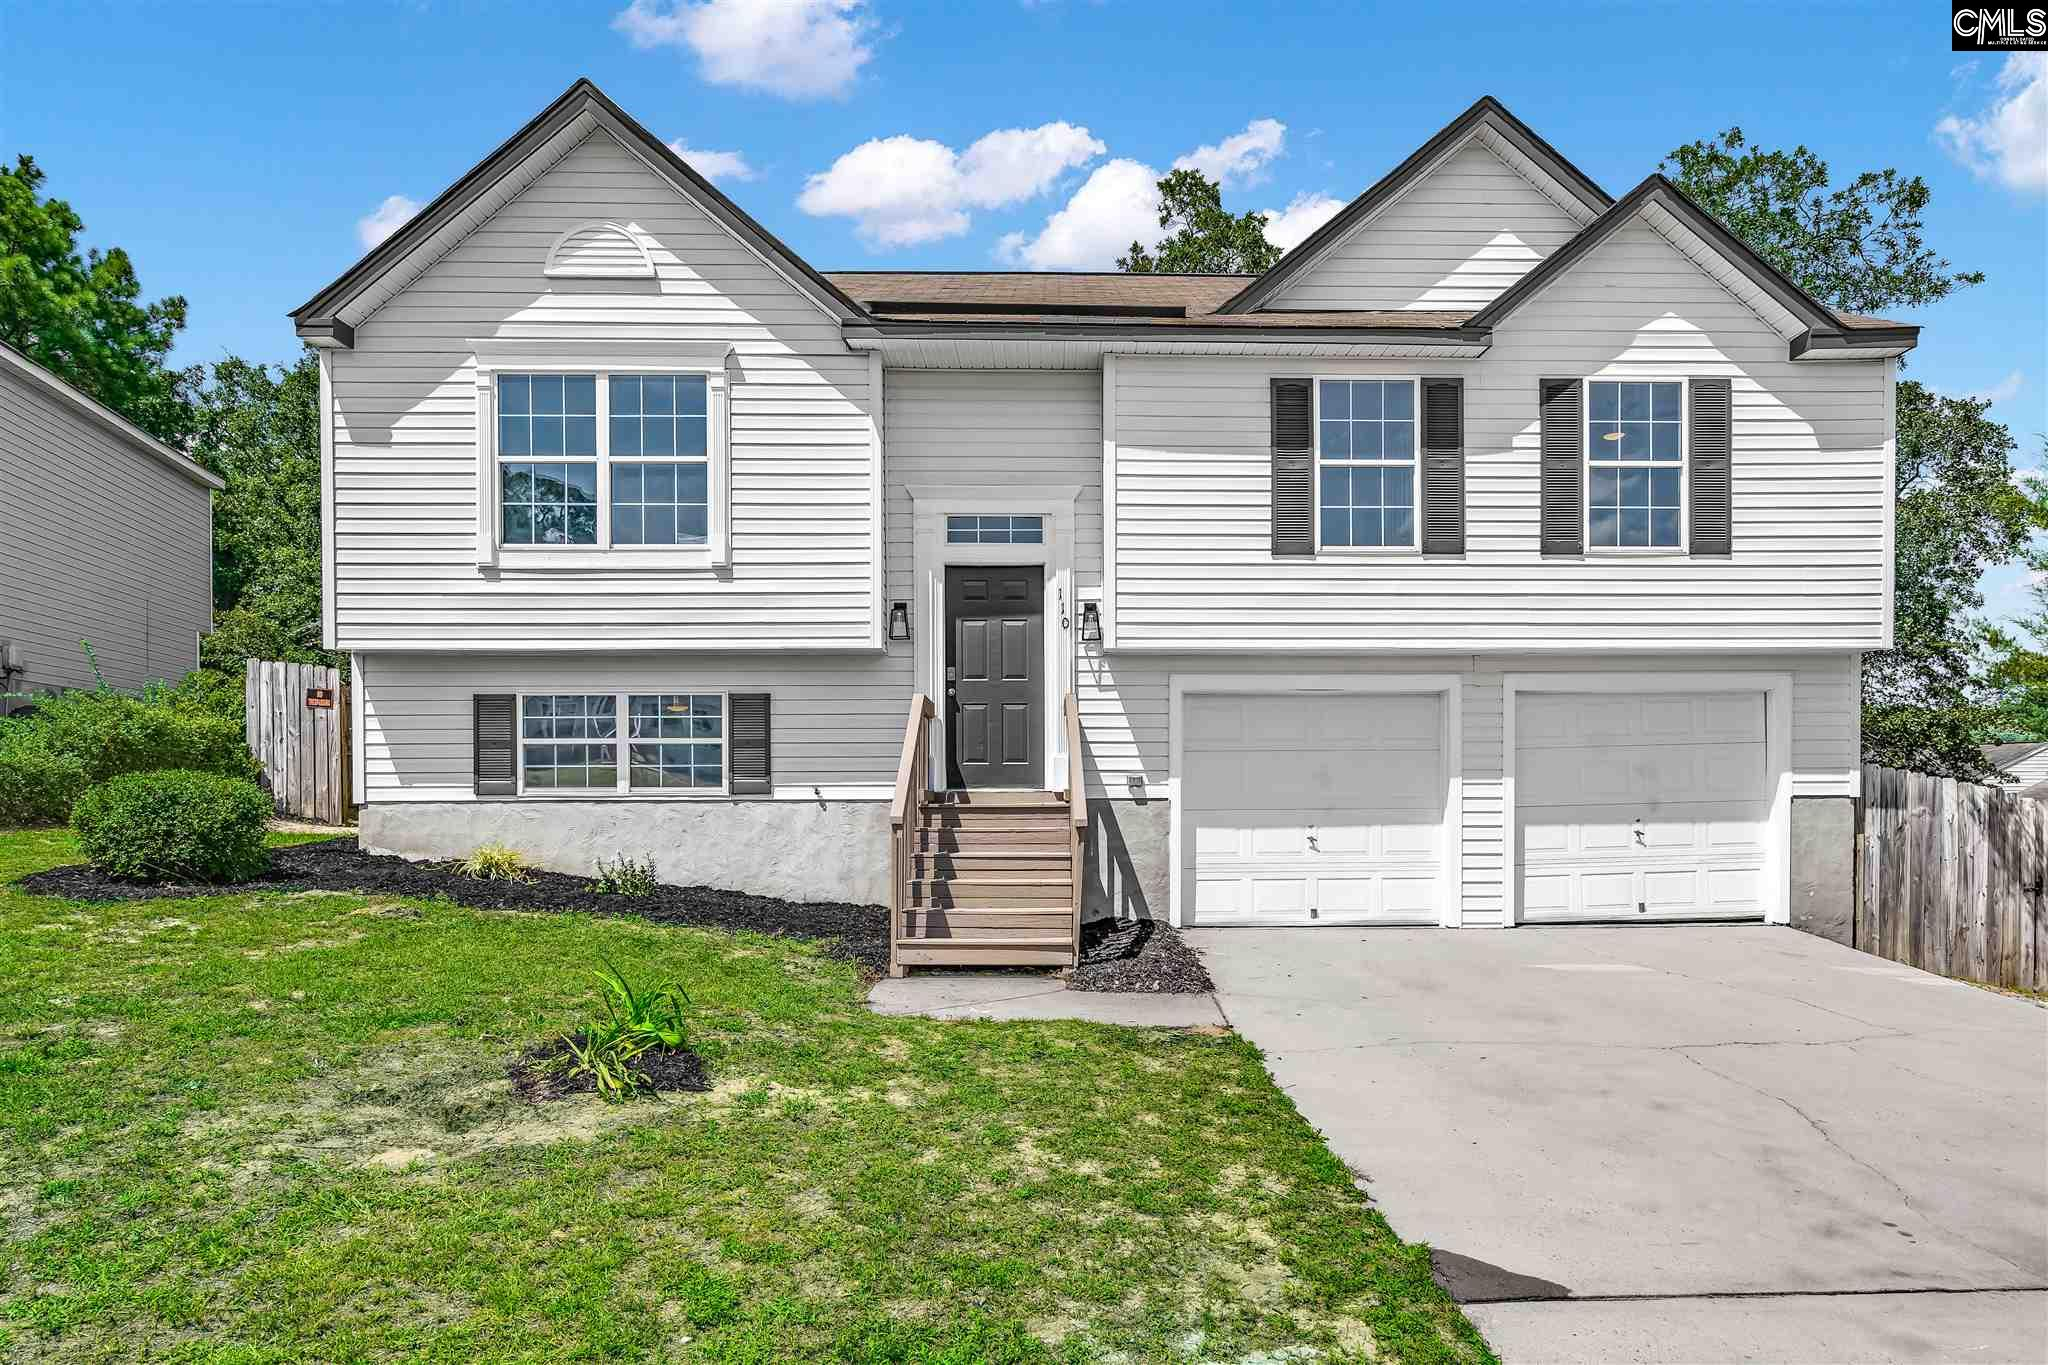 110 Vineyard West Columbia, SC 29170